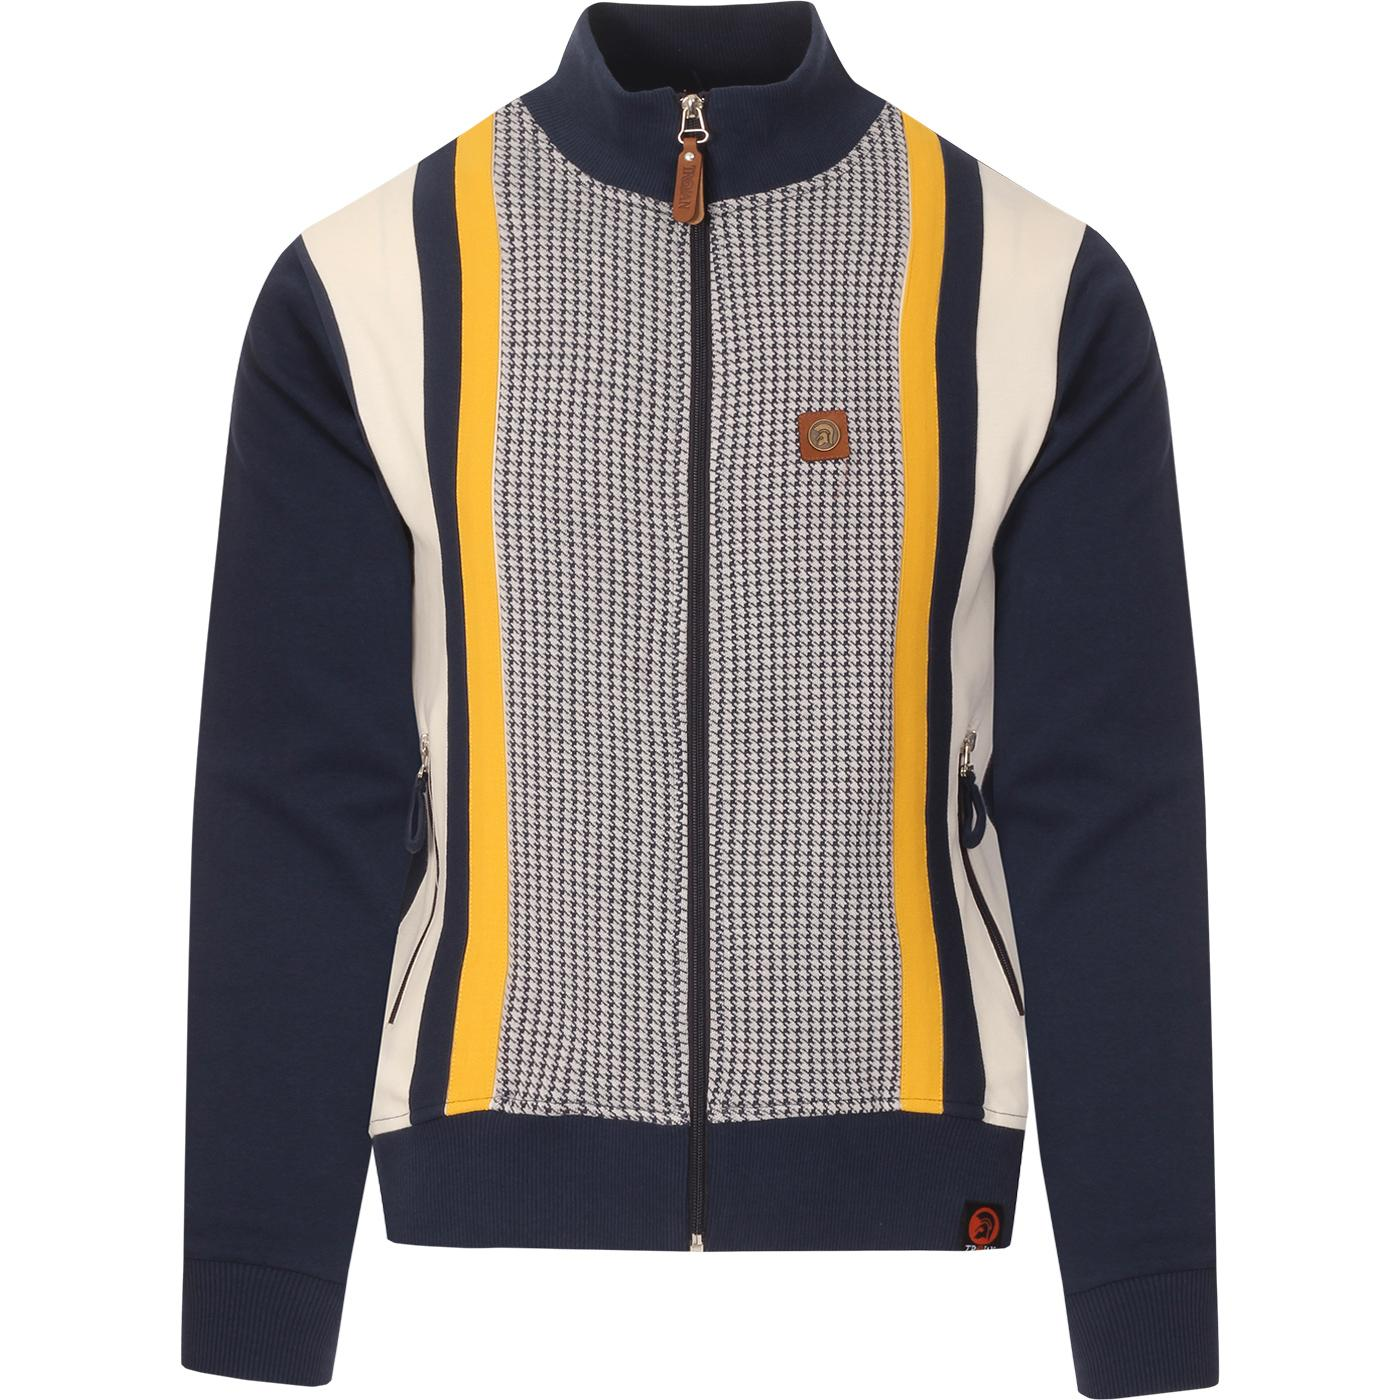 TROJAN RECORDS Mod Dogtooth Panel Track Top (N)